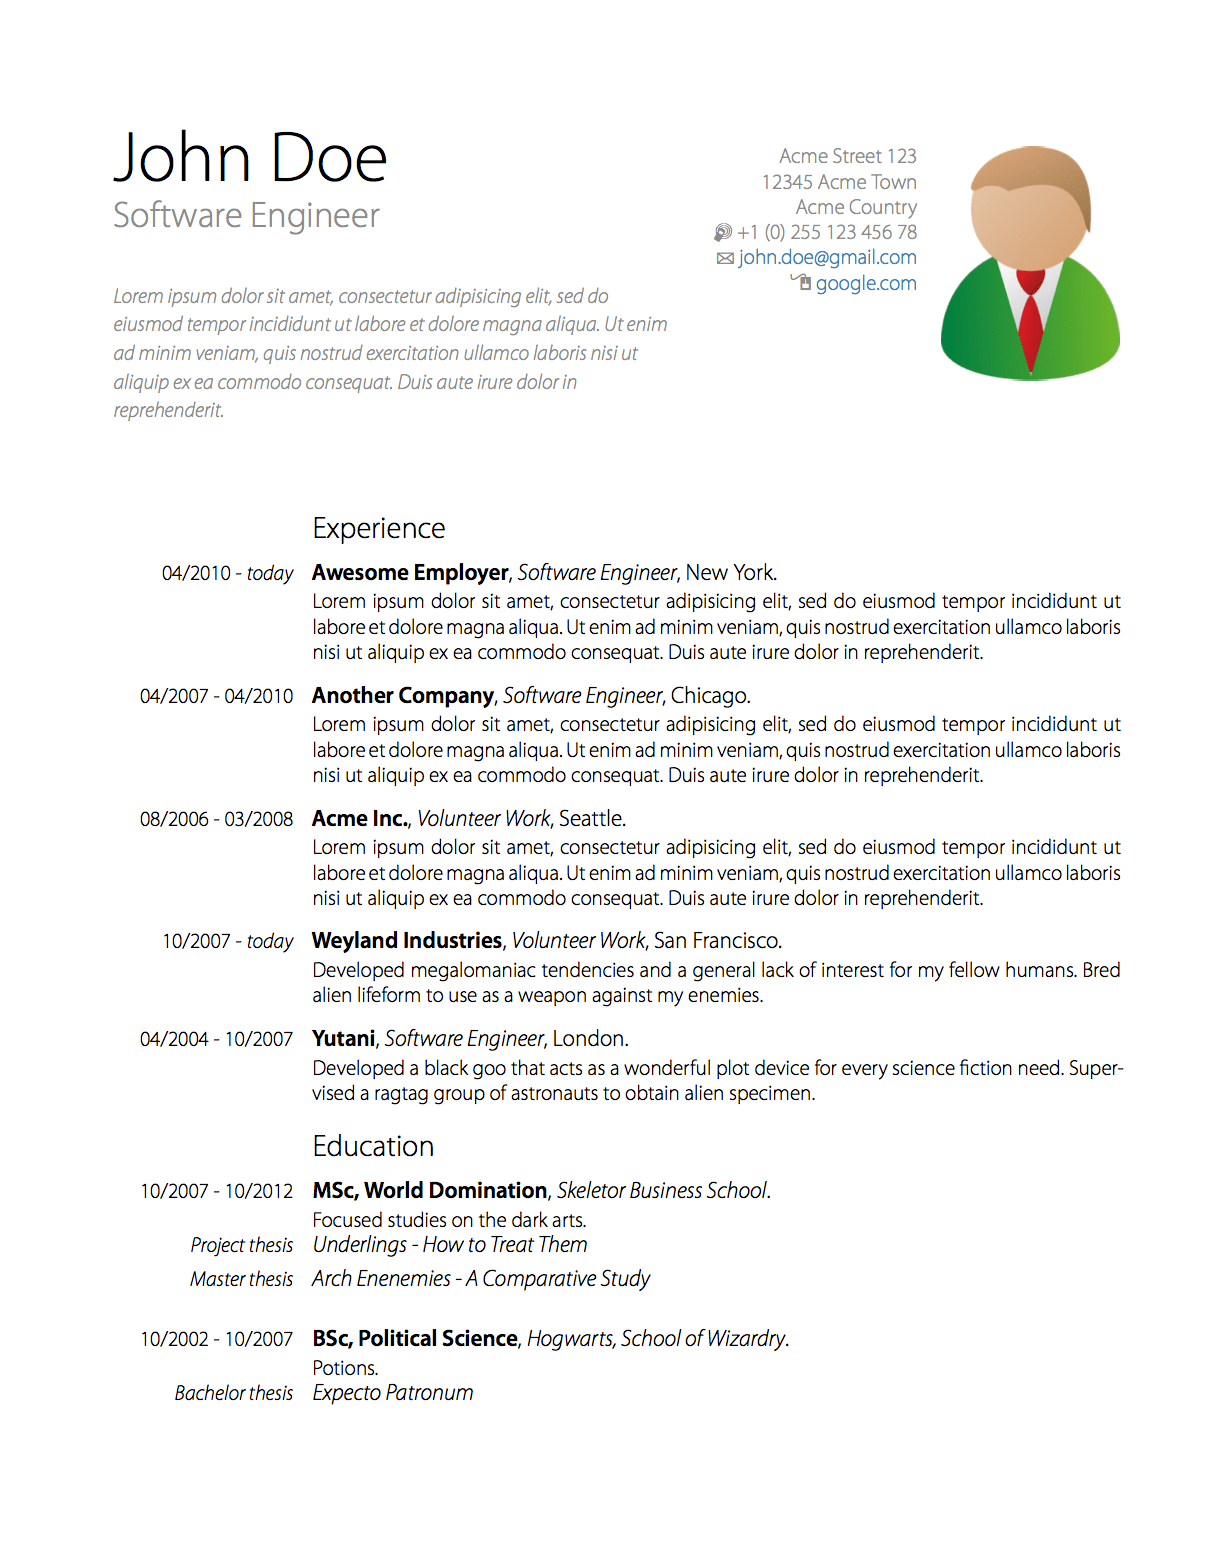 moderncv resume picture